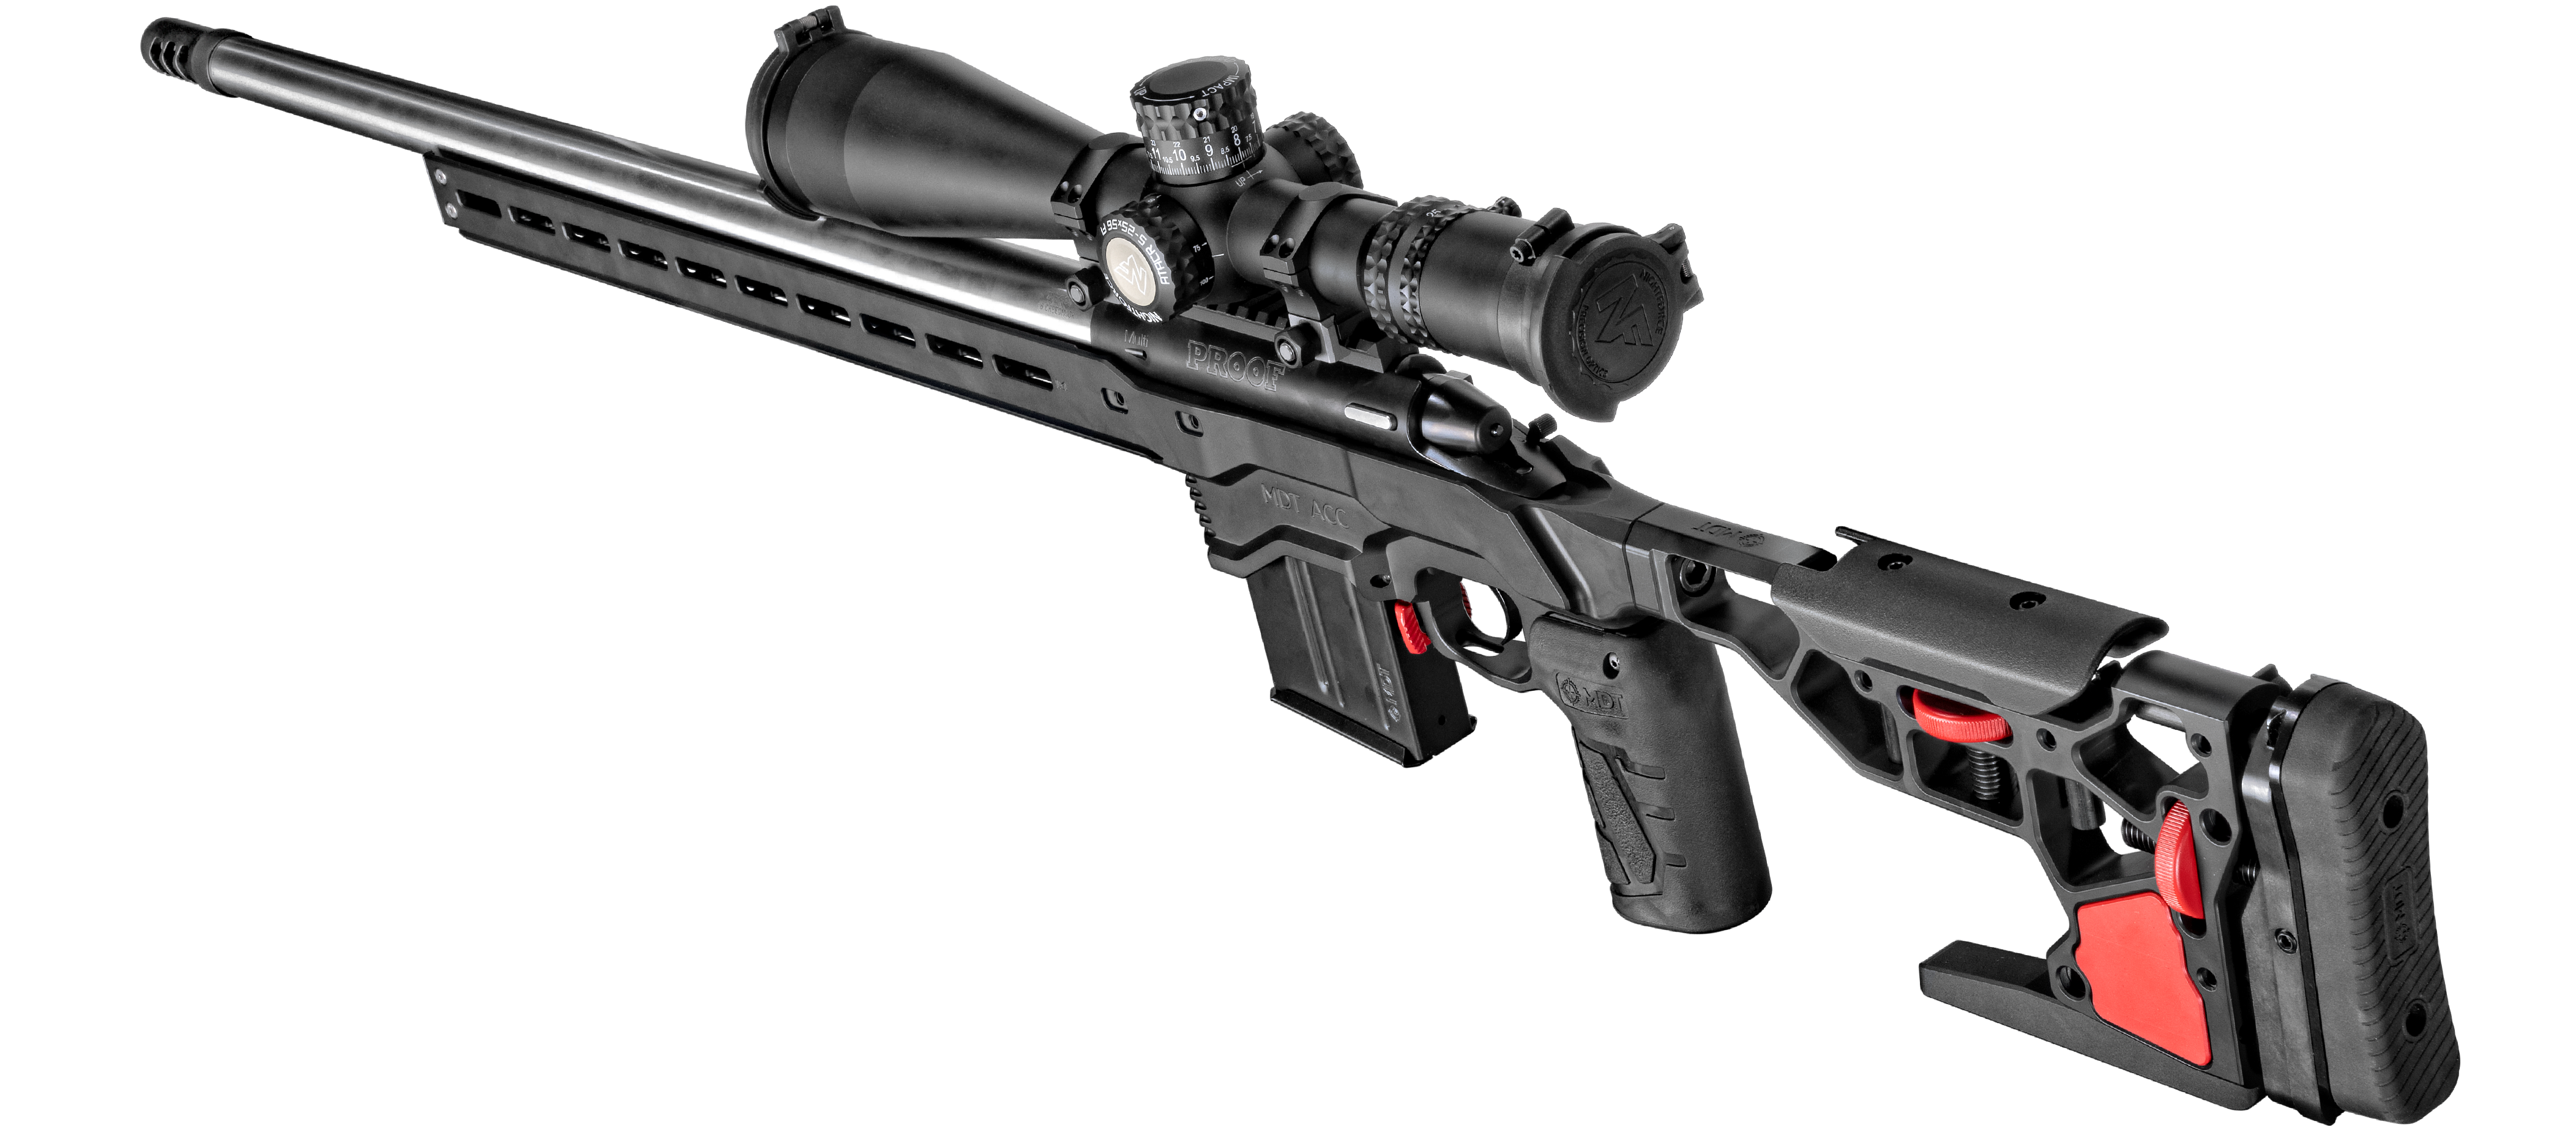 New Precision Rifle: PROOF Research MDT Chassis Rifle